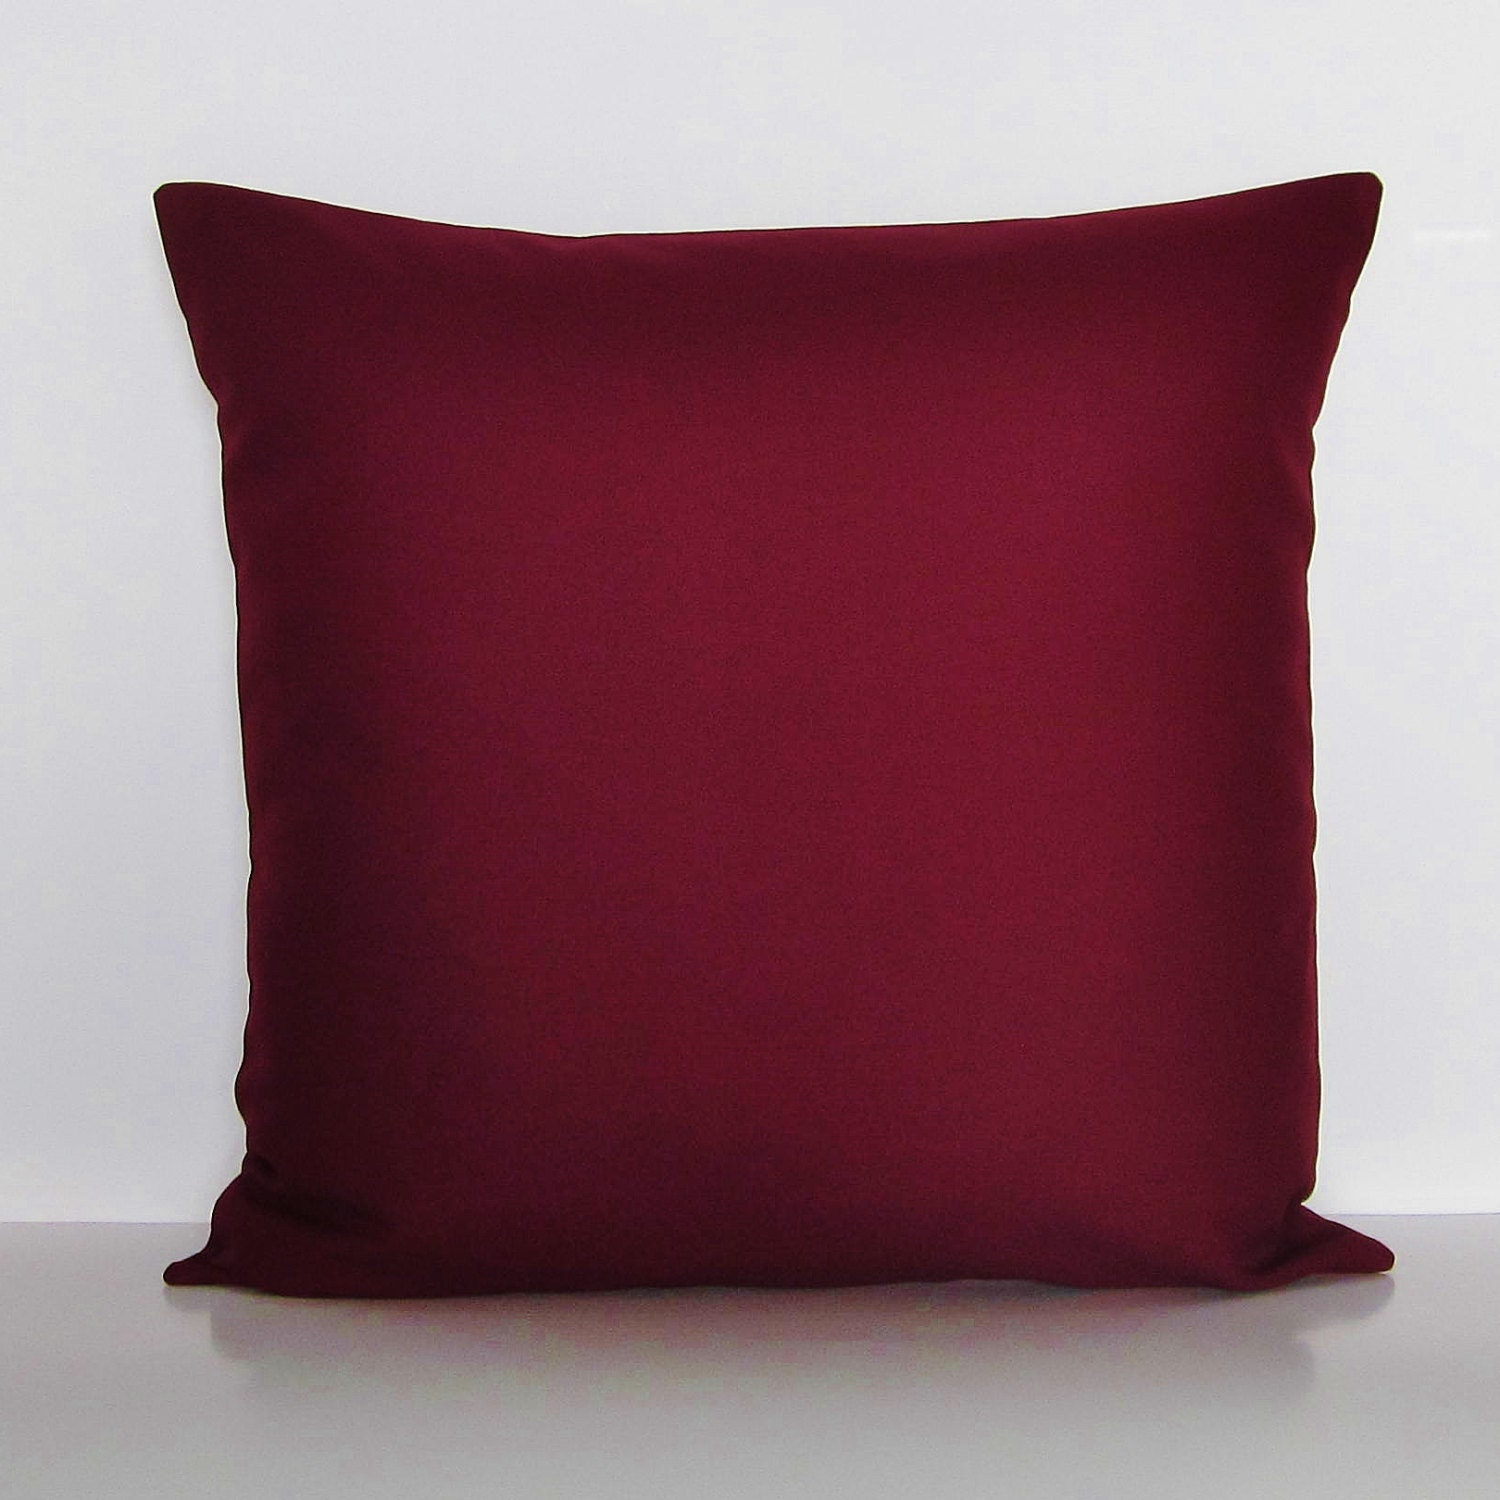 Throw Pillows Maroon : Burgundy Pillow Cover Decorative Throw Accent Pillow Couch